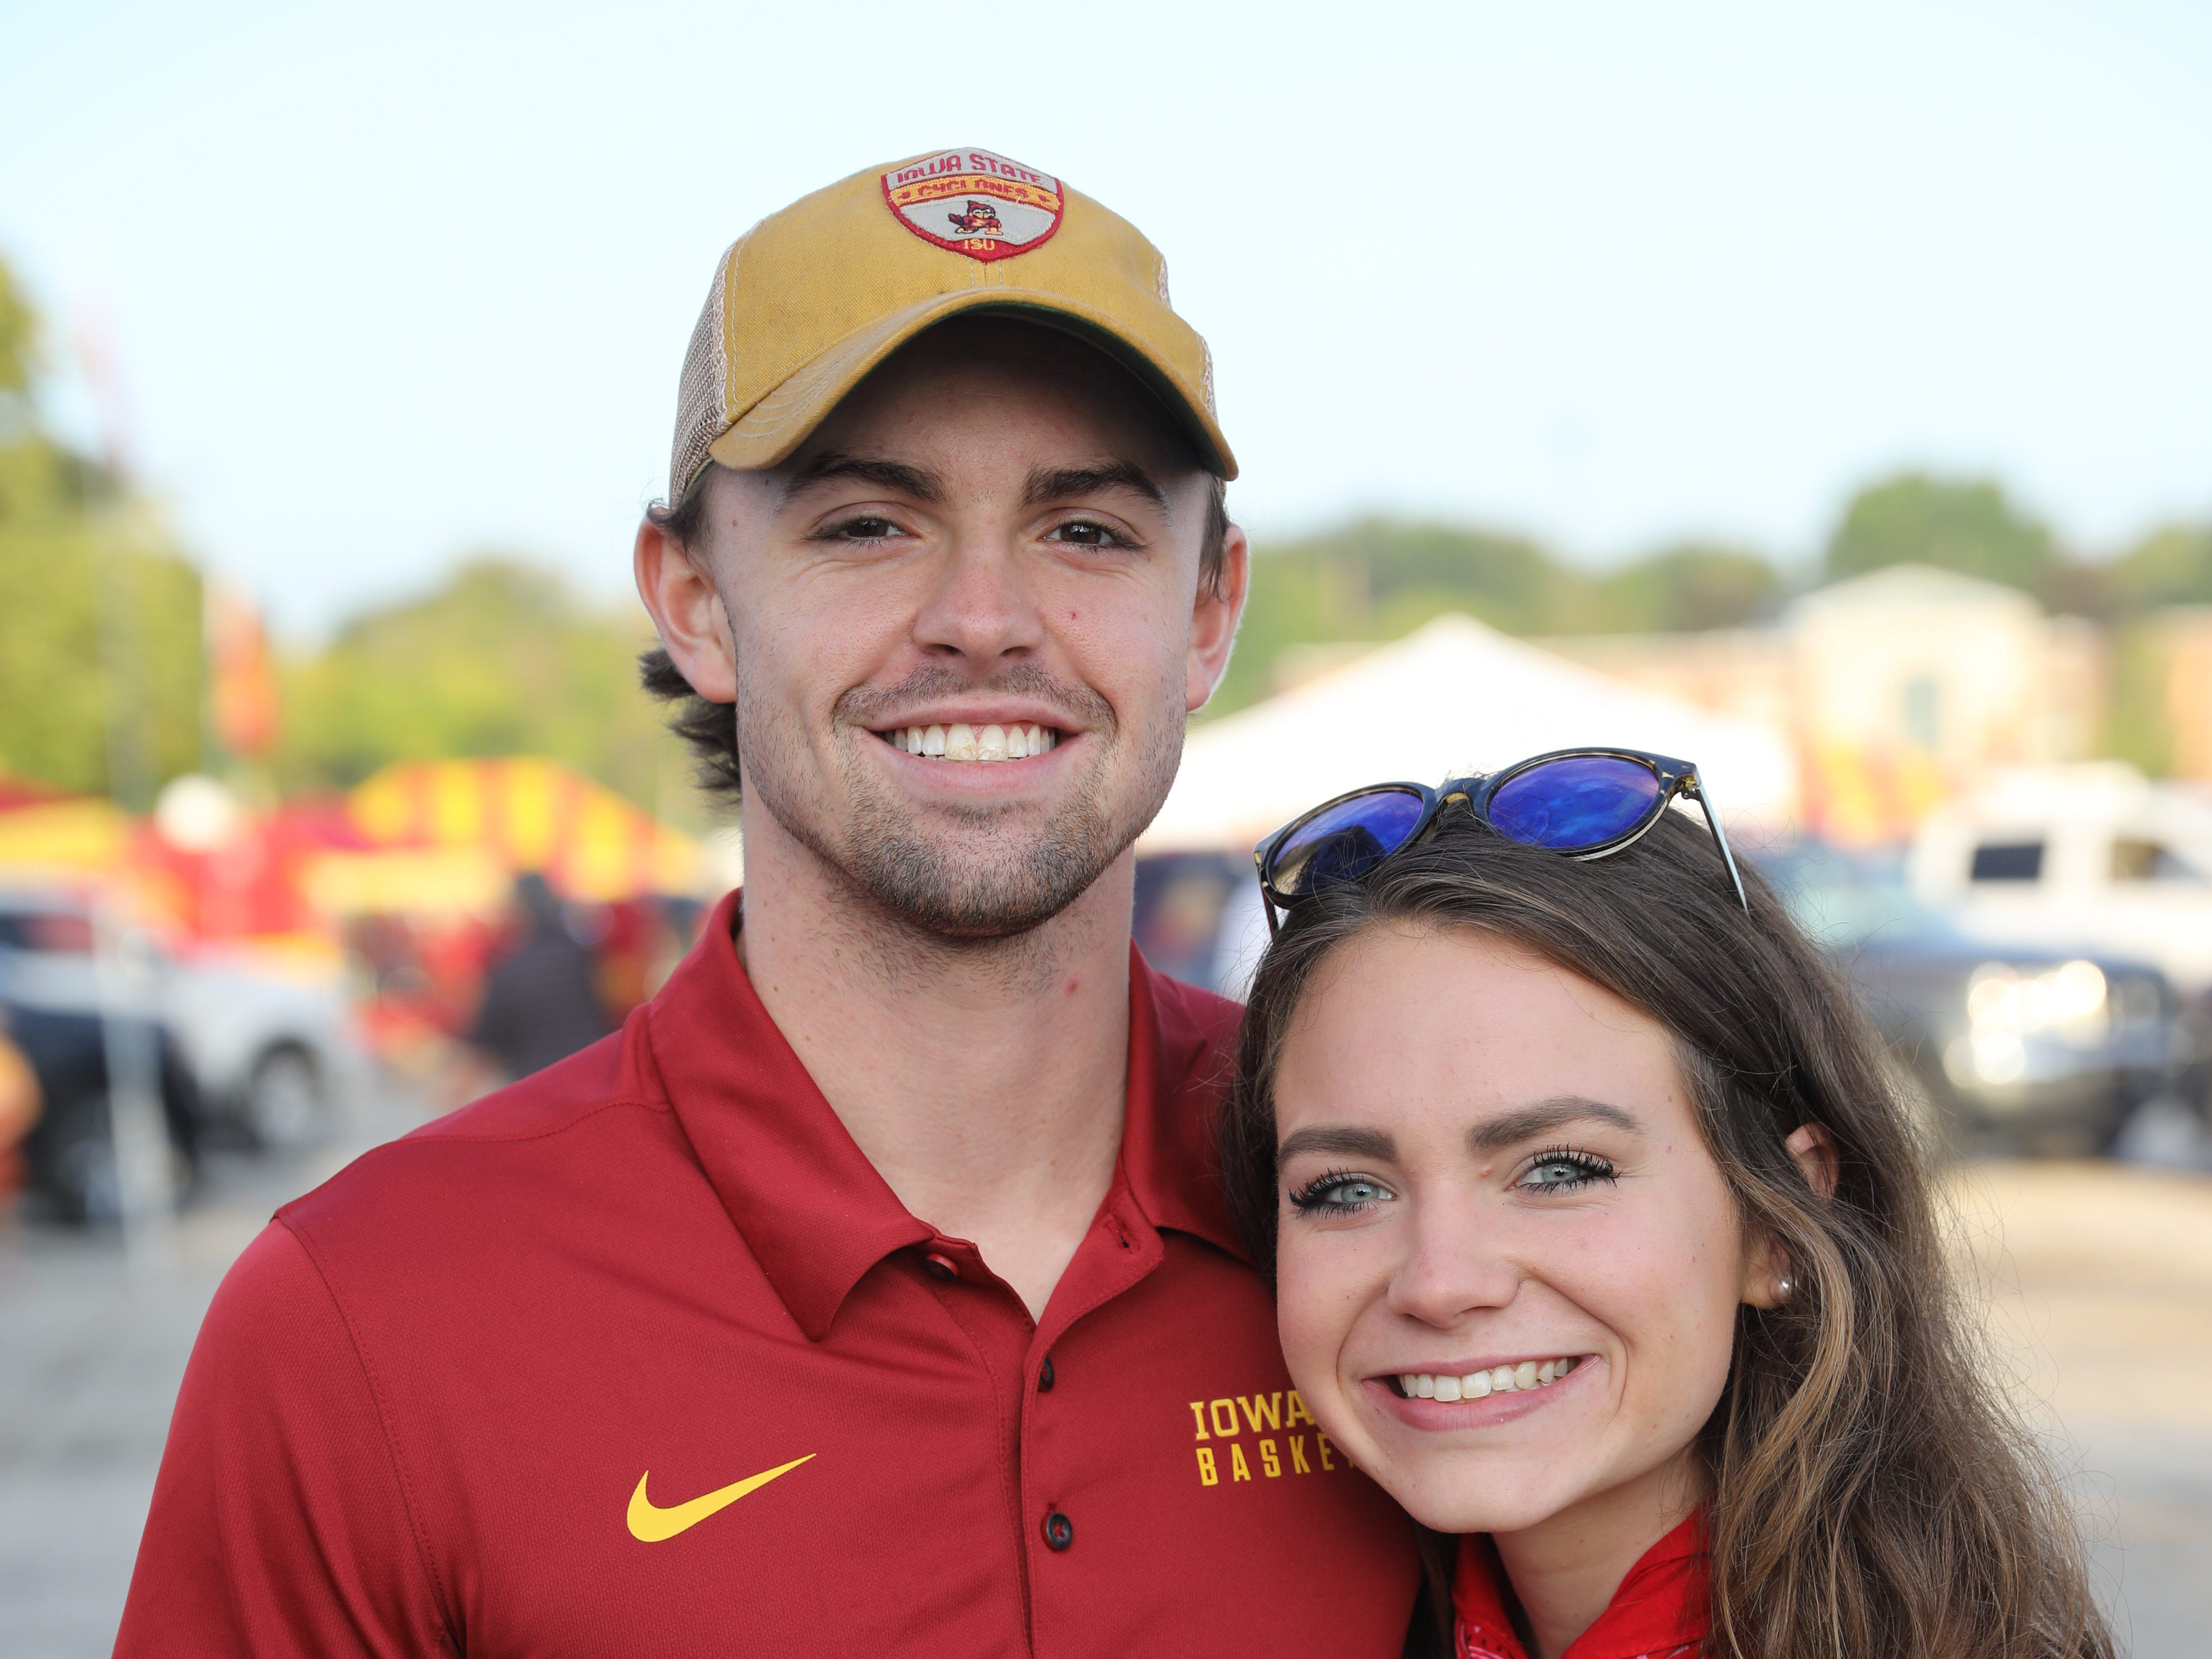 Cade Niblo, 21, of Ames, and Grace Nordquist, 20, of Sioux City, Saturday, Sept. 15, 2018, before the Iowa State football game against Oklahoma in Ames.